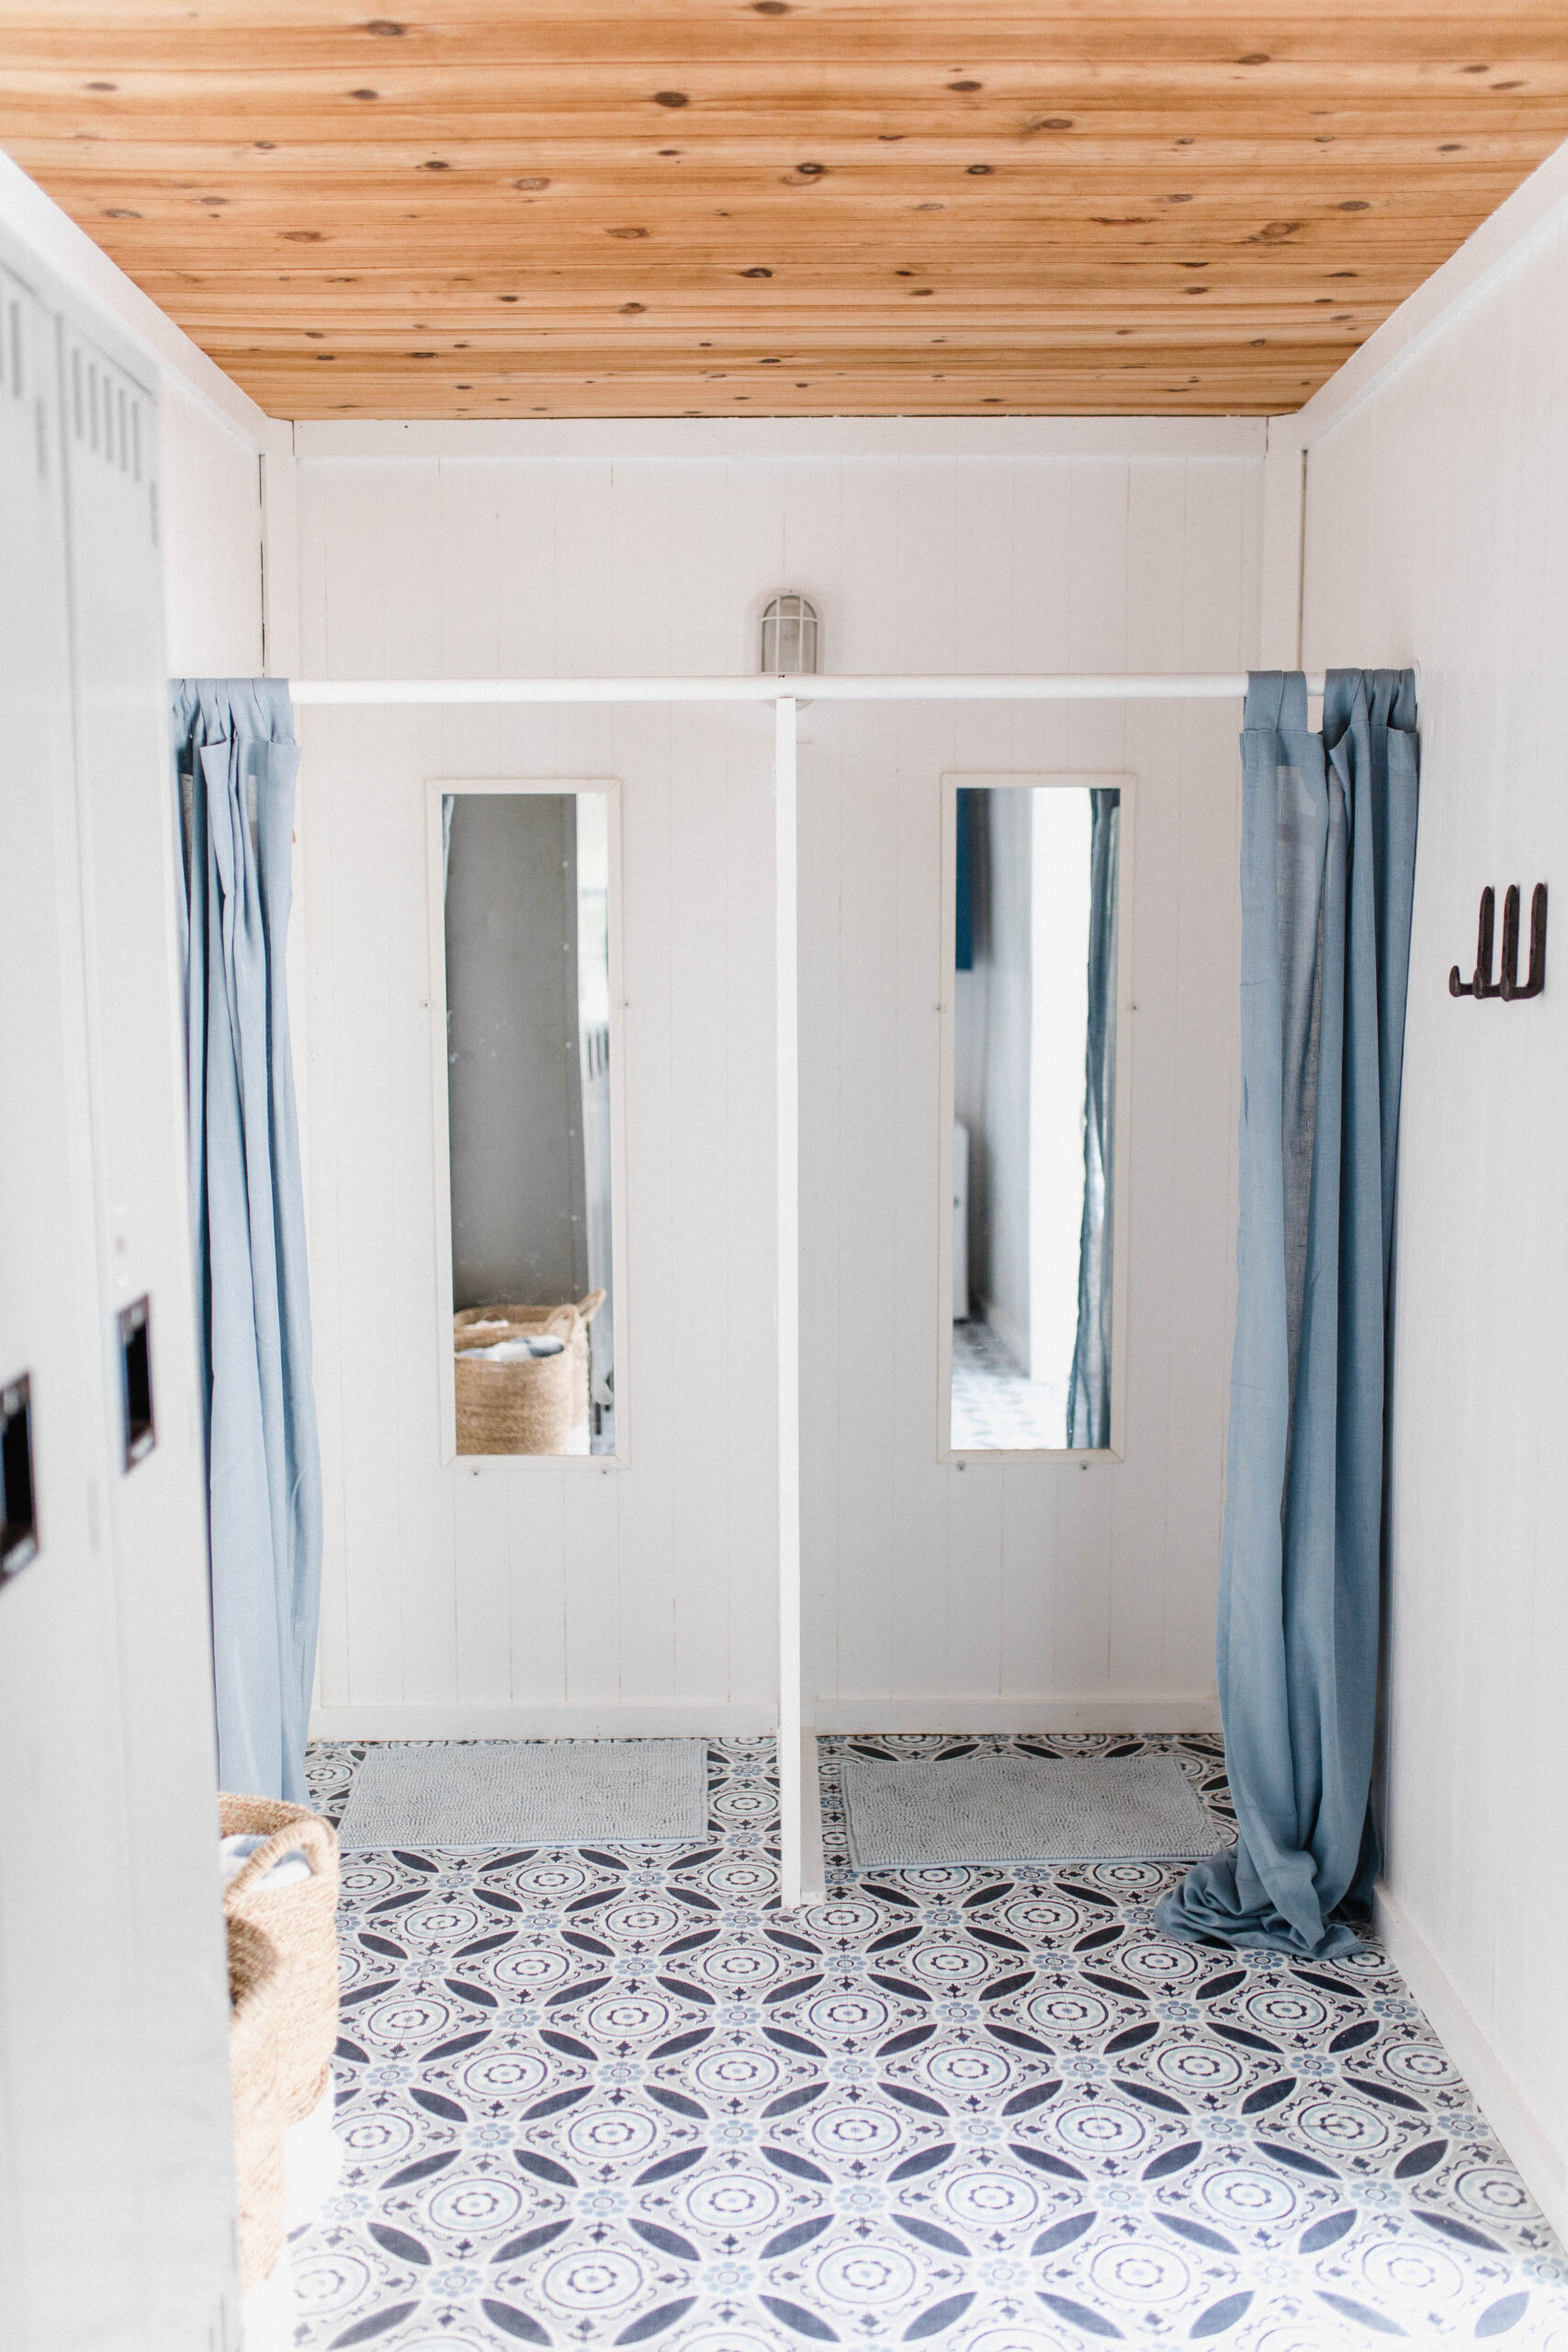 Connecticut life and style blogger Lauren McBride shares her modern coastal pool house makeover, complete with source list.